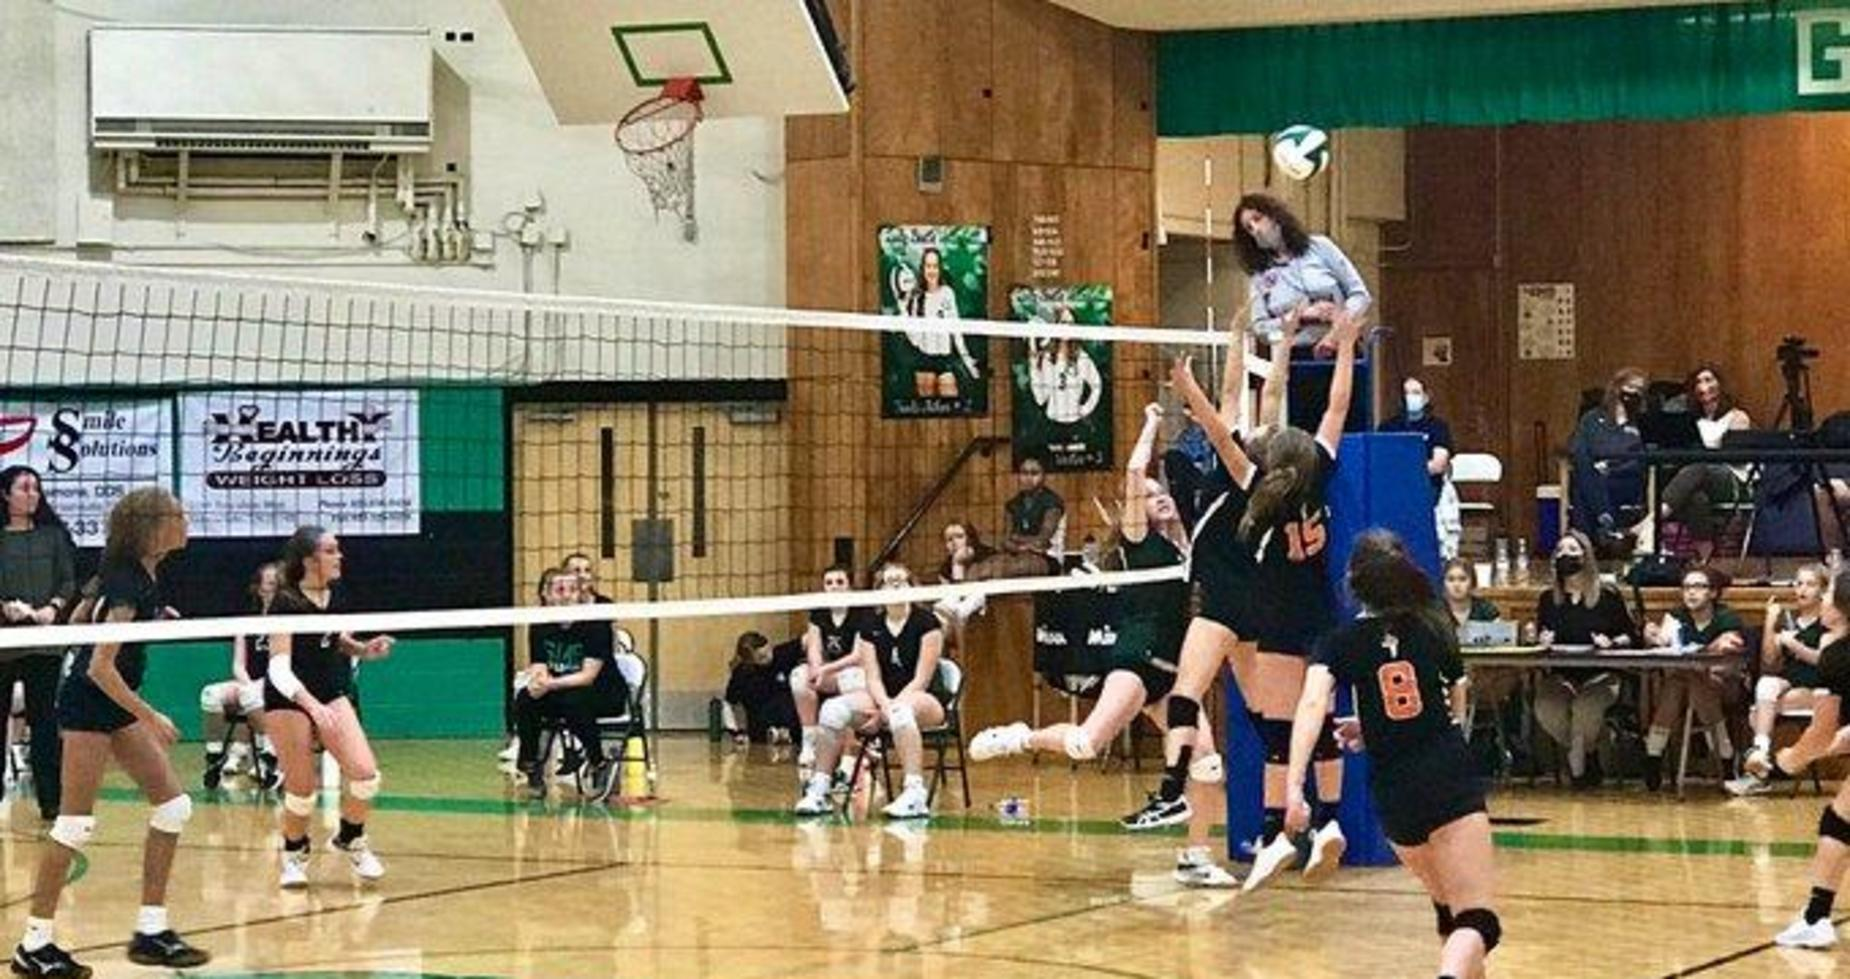 a picture of a girls volleyball game